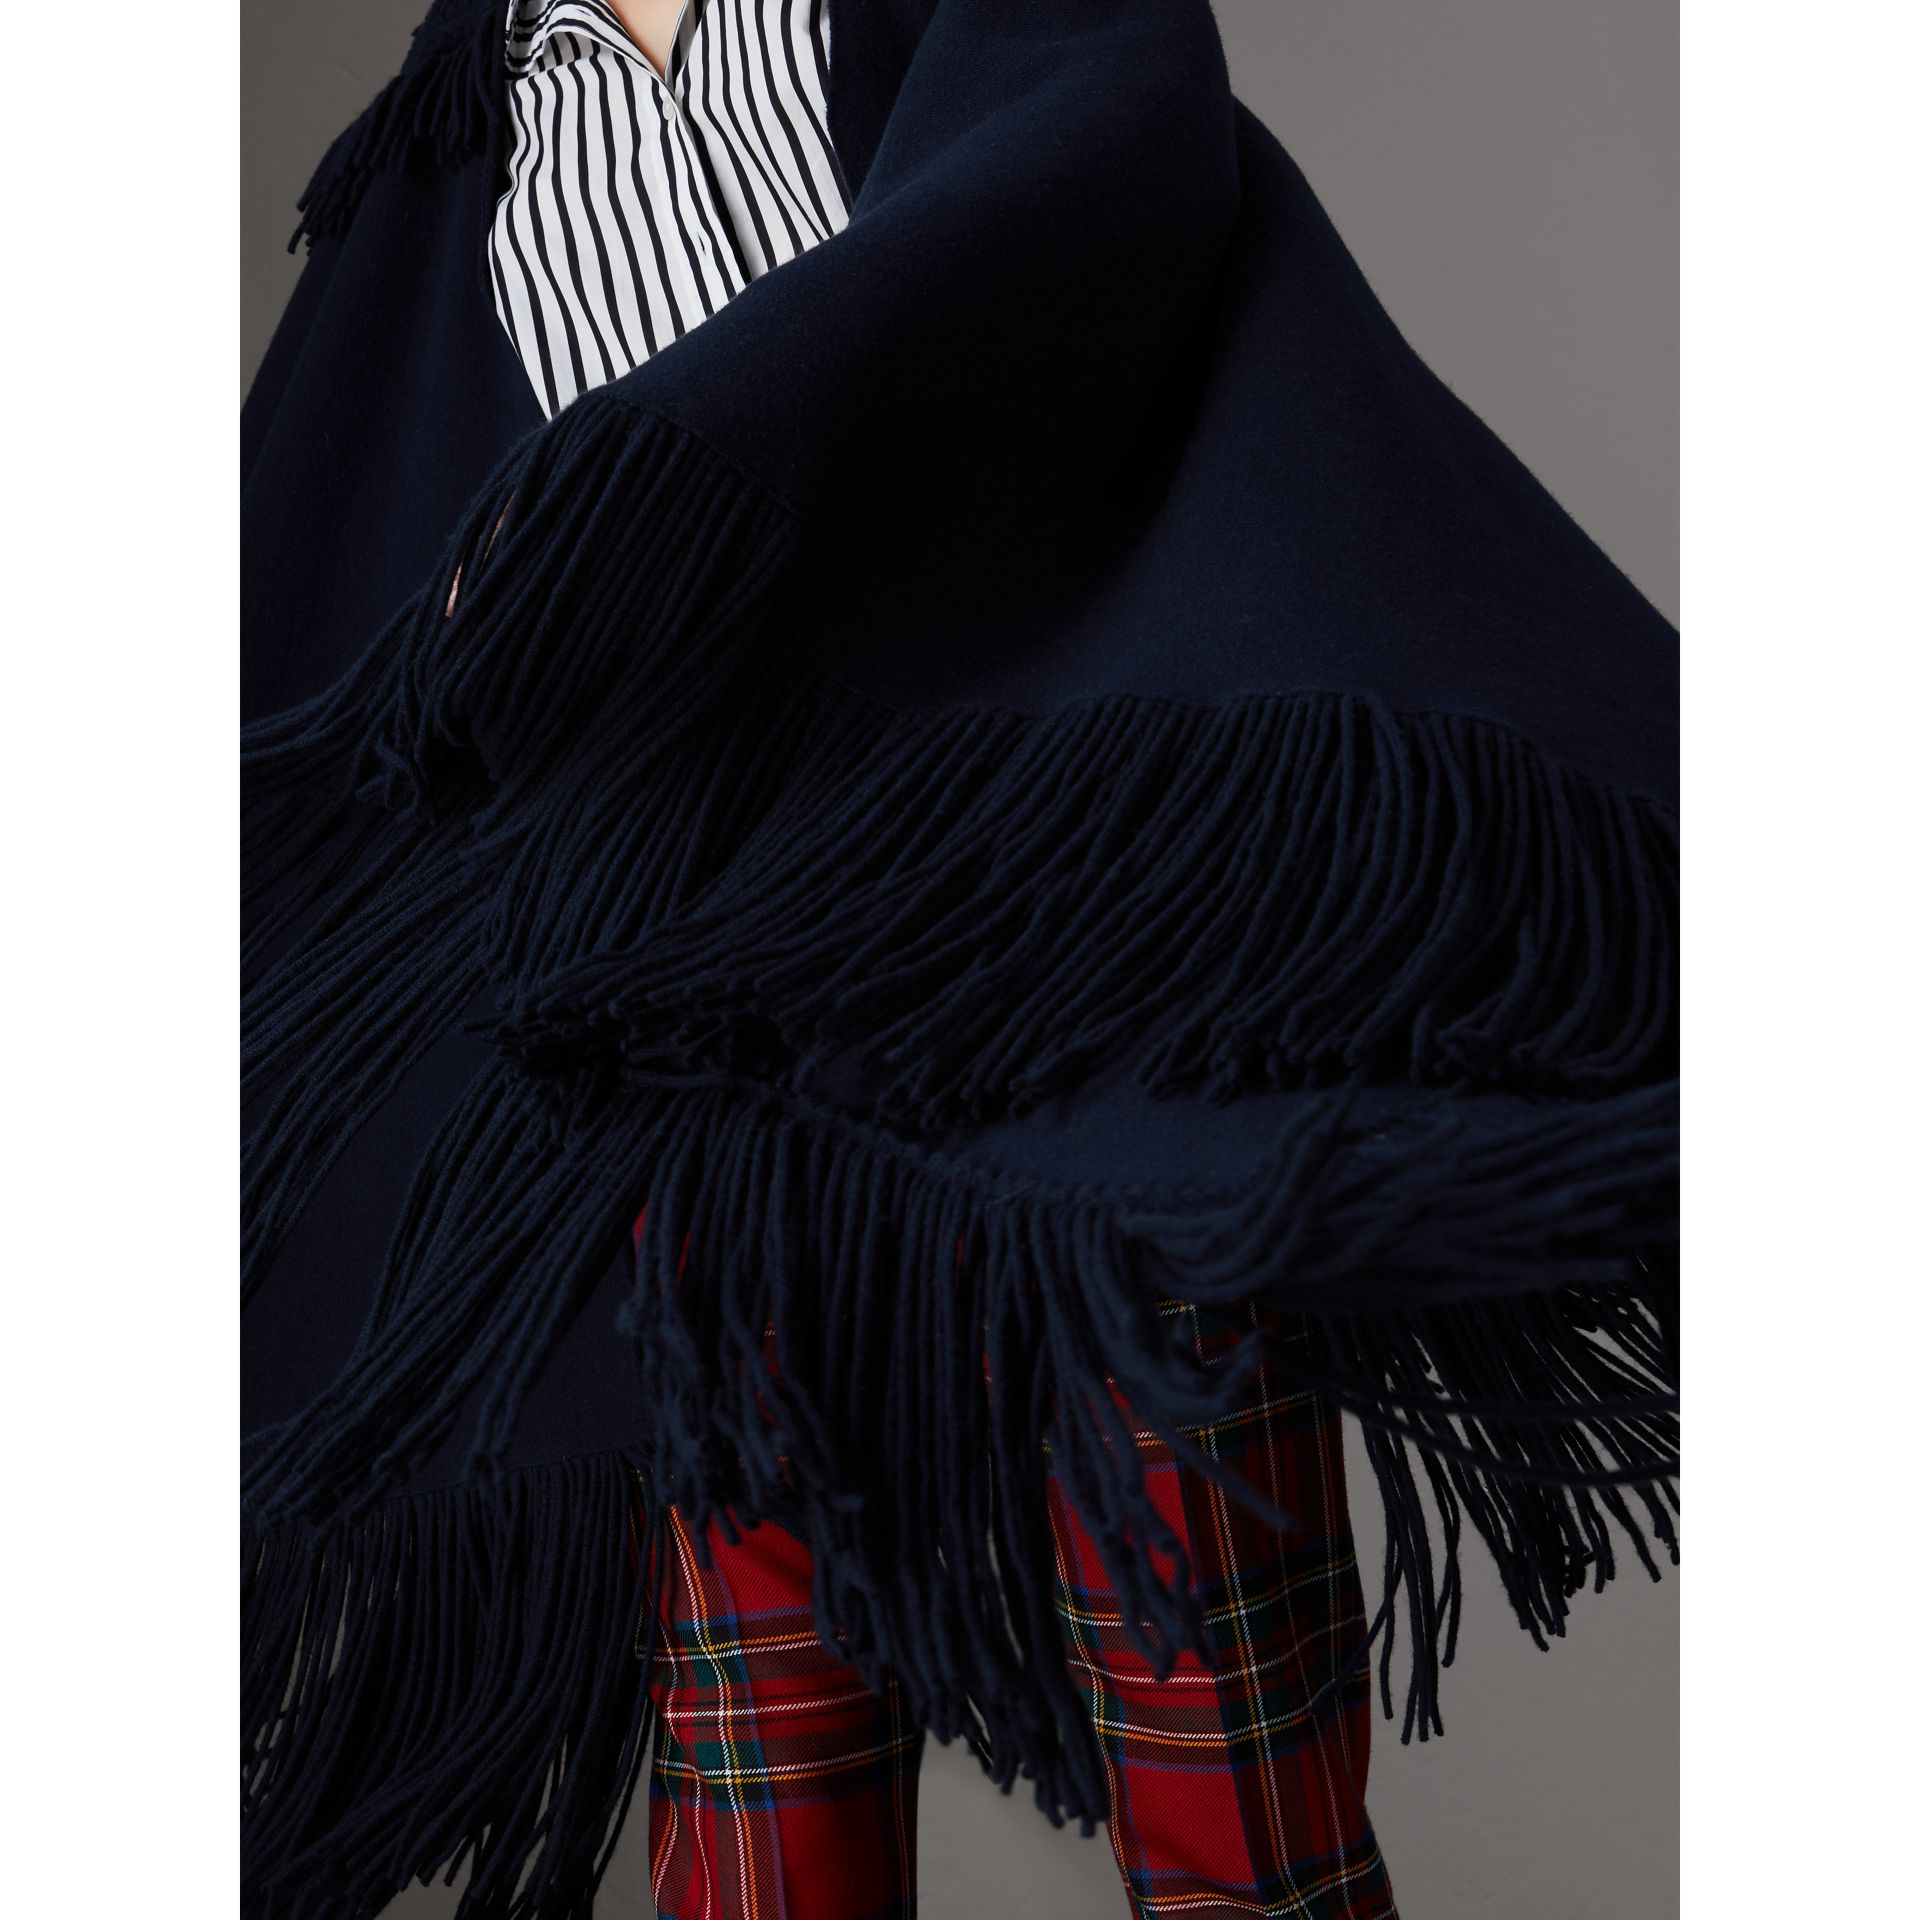 Fringed Wool Cashmere Blend Poncho in Navy - Women | Burberry Australia - gallery image 2